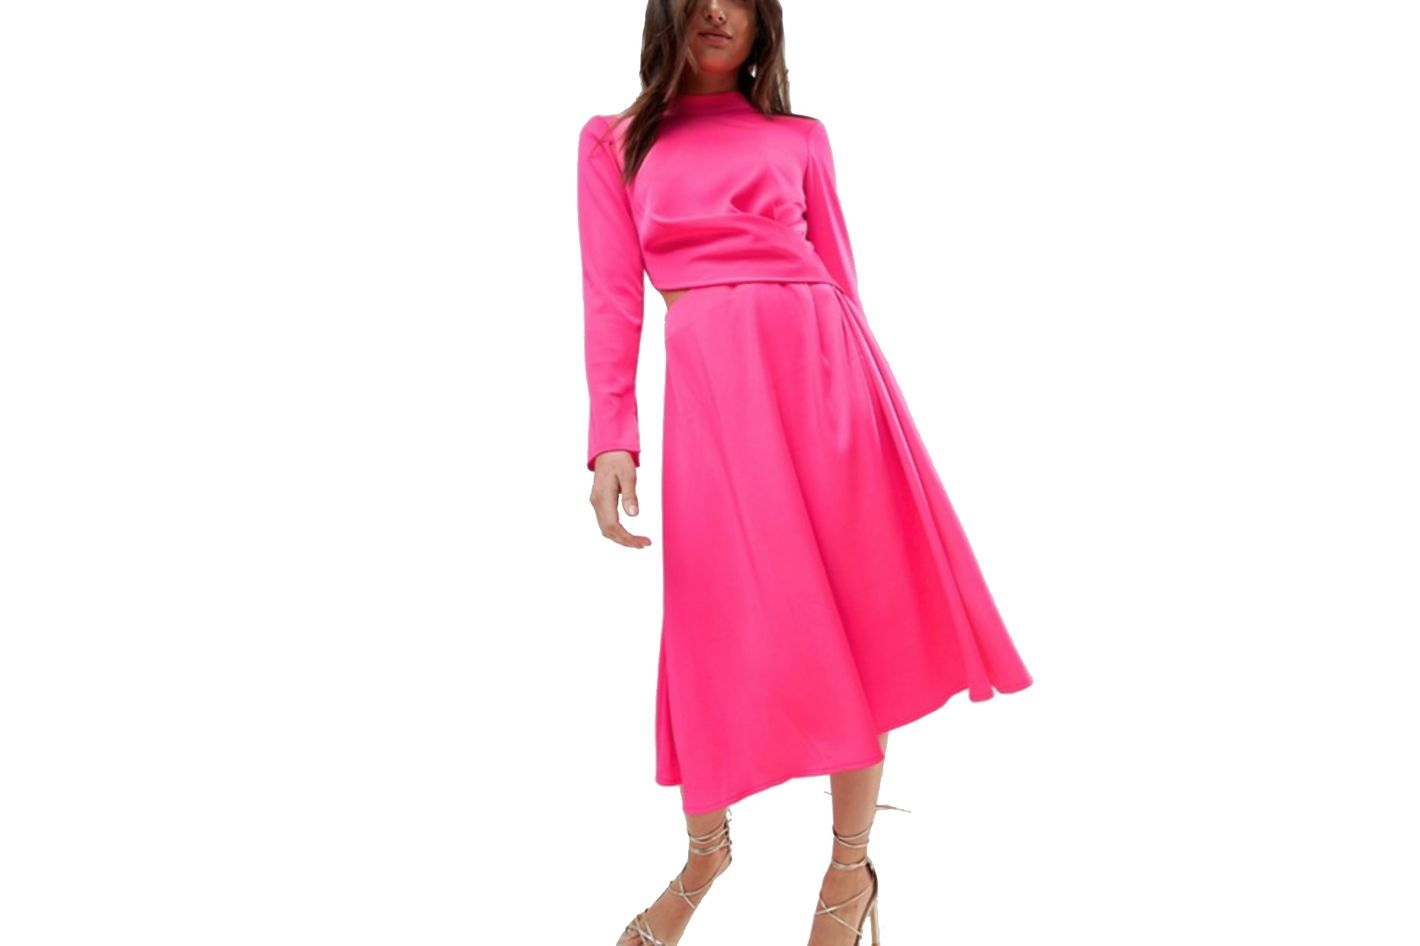 Beautiful wedding guest dresses for spring photos styles for Spring wedding dress guest